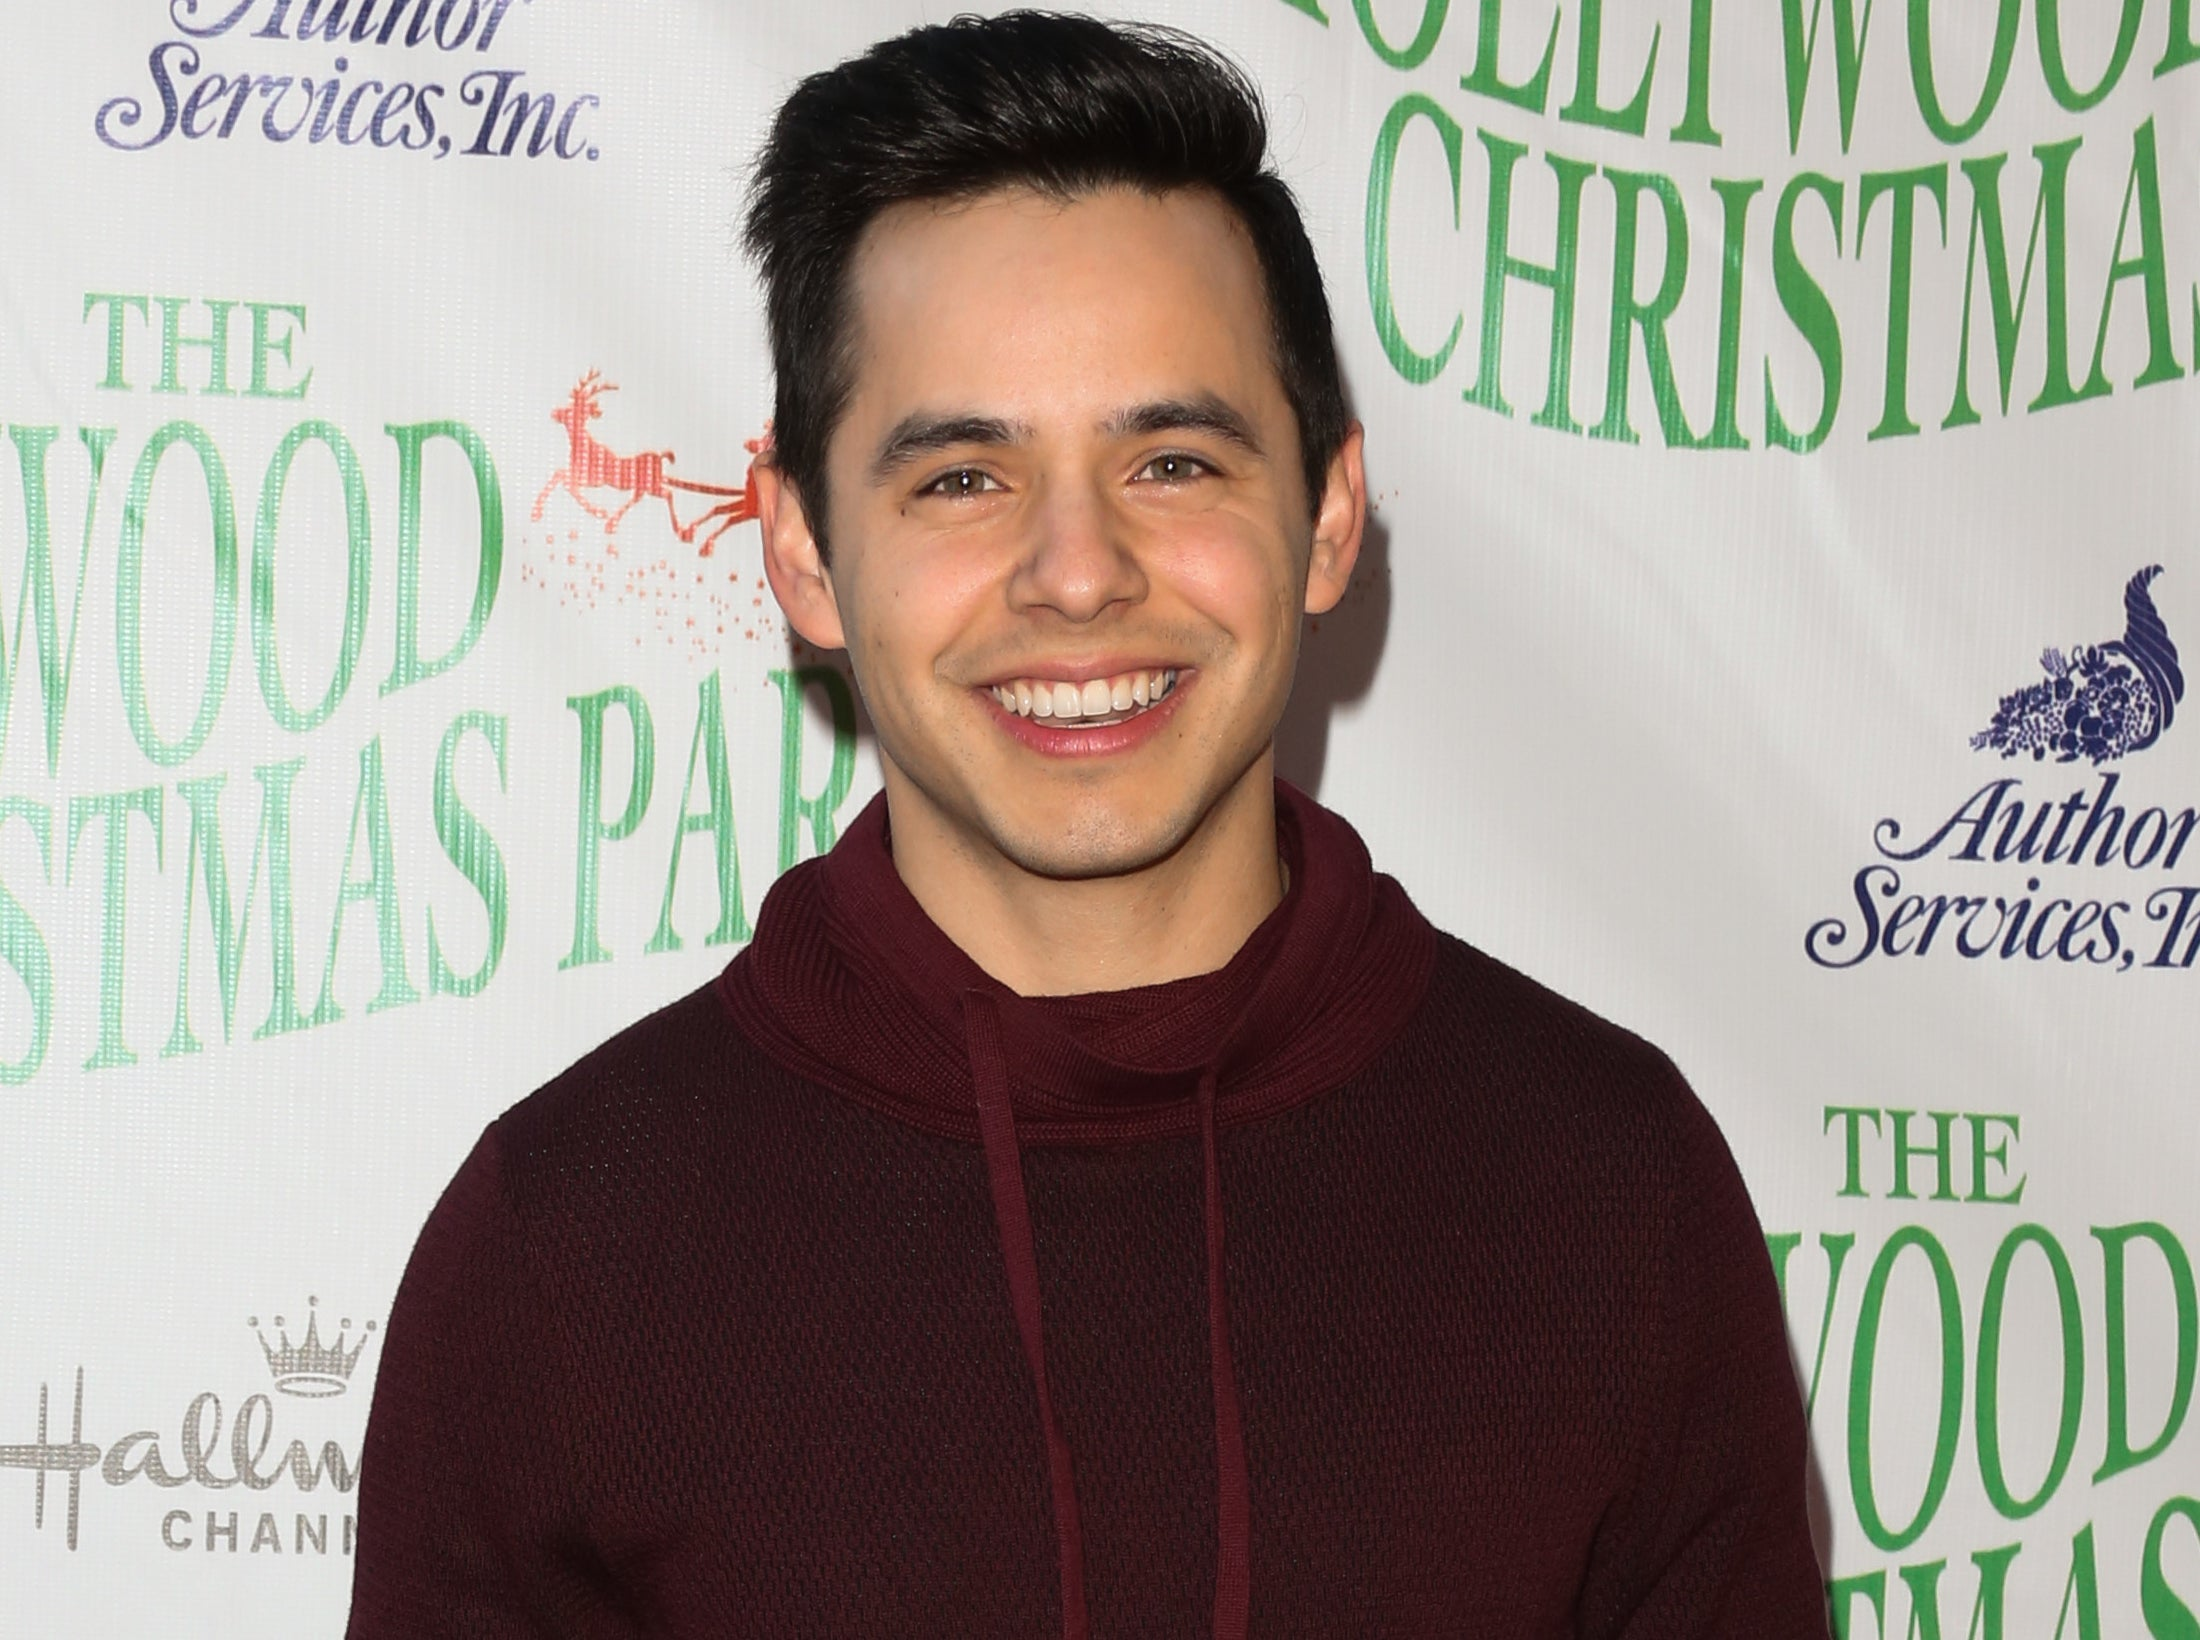 David wears a maroon hooded sweater to an event